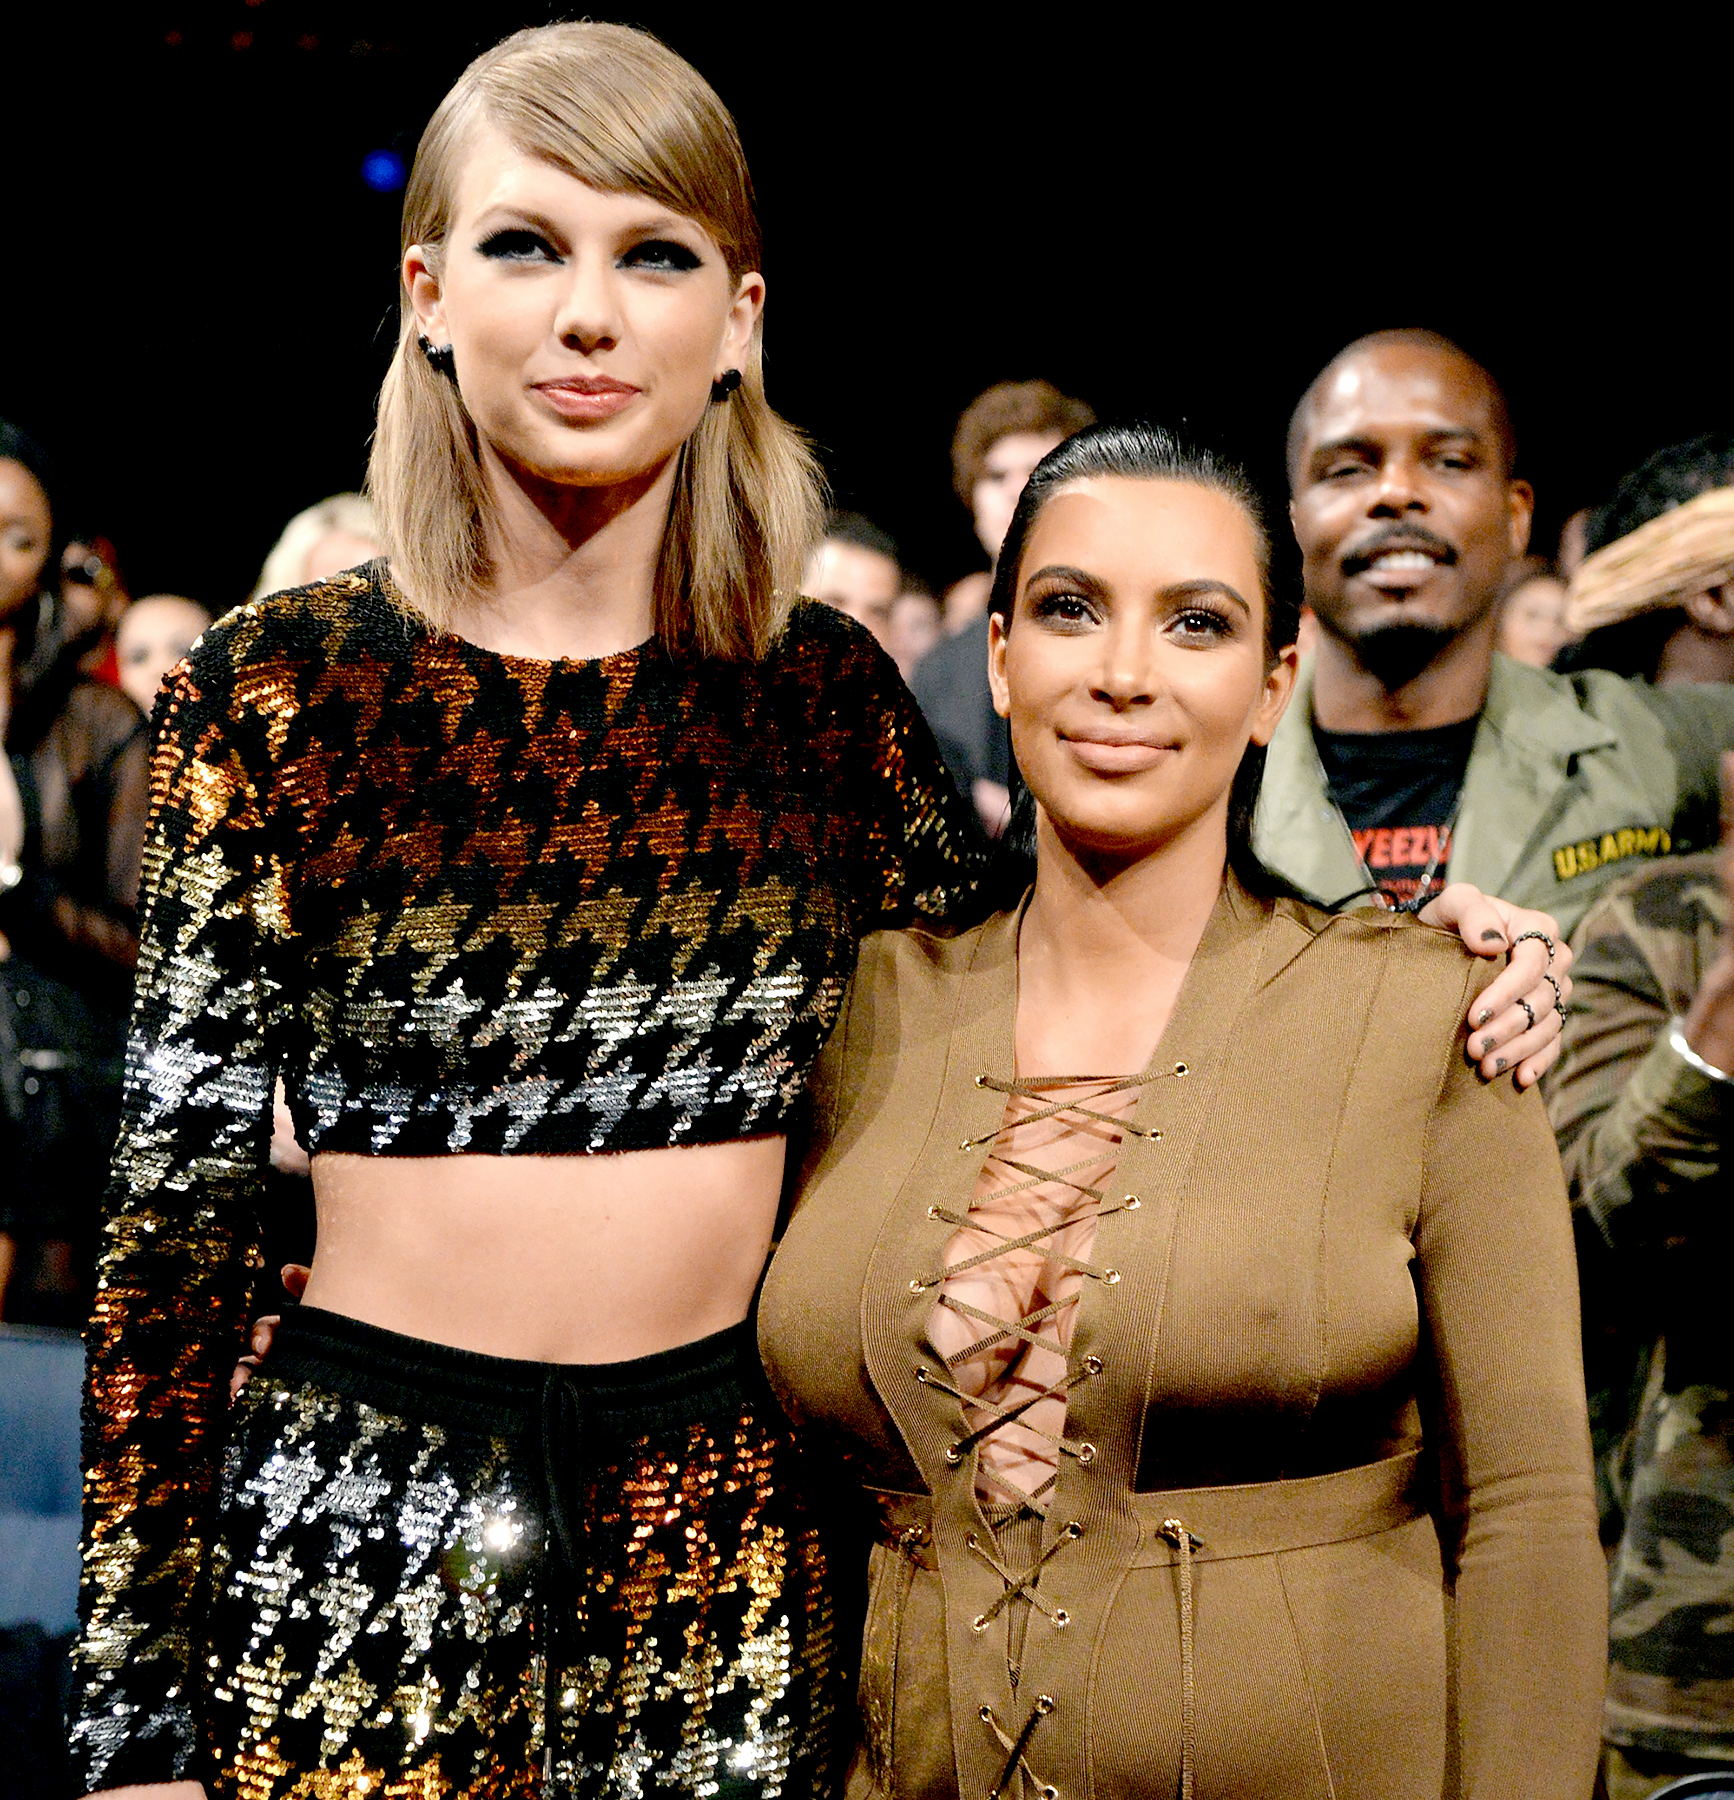 Taylor Swift and Kim Kardashian West attend the 2015 MTV Video Music Awards.